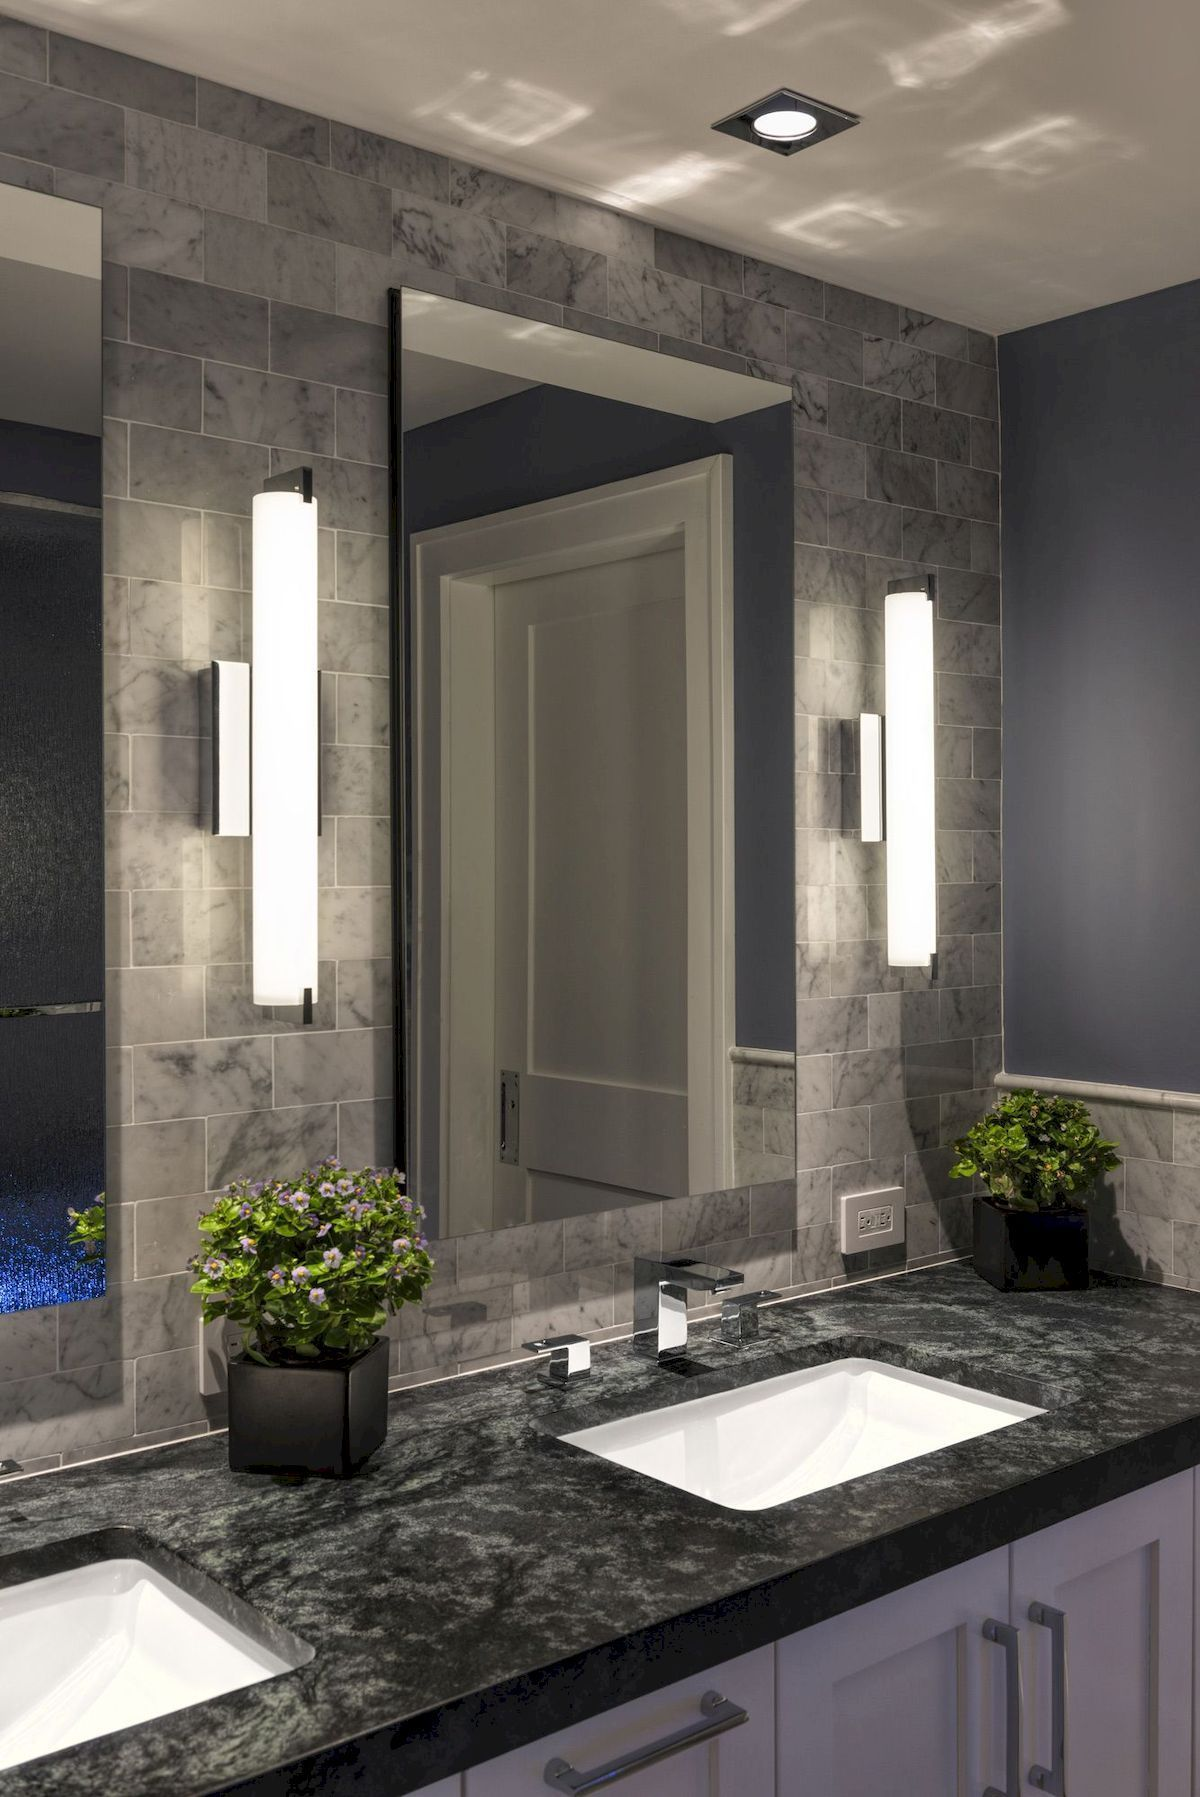 10 Bathroom Lighting Ideas Unique Lights For Bathroom Best